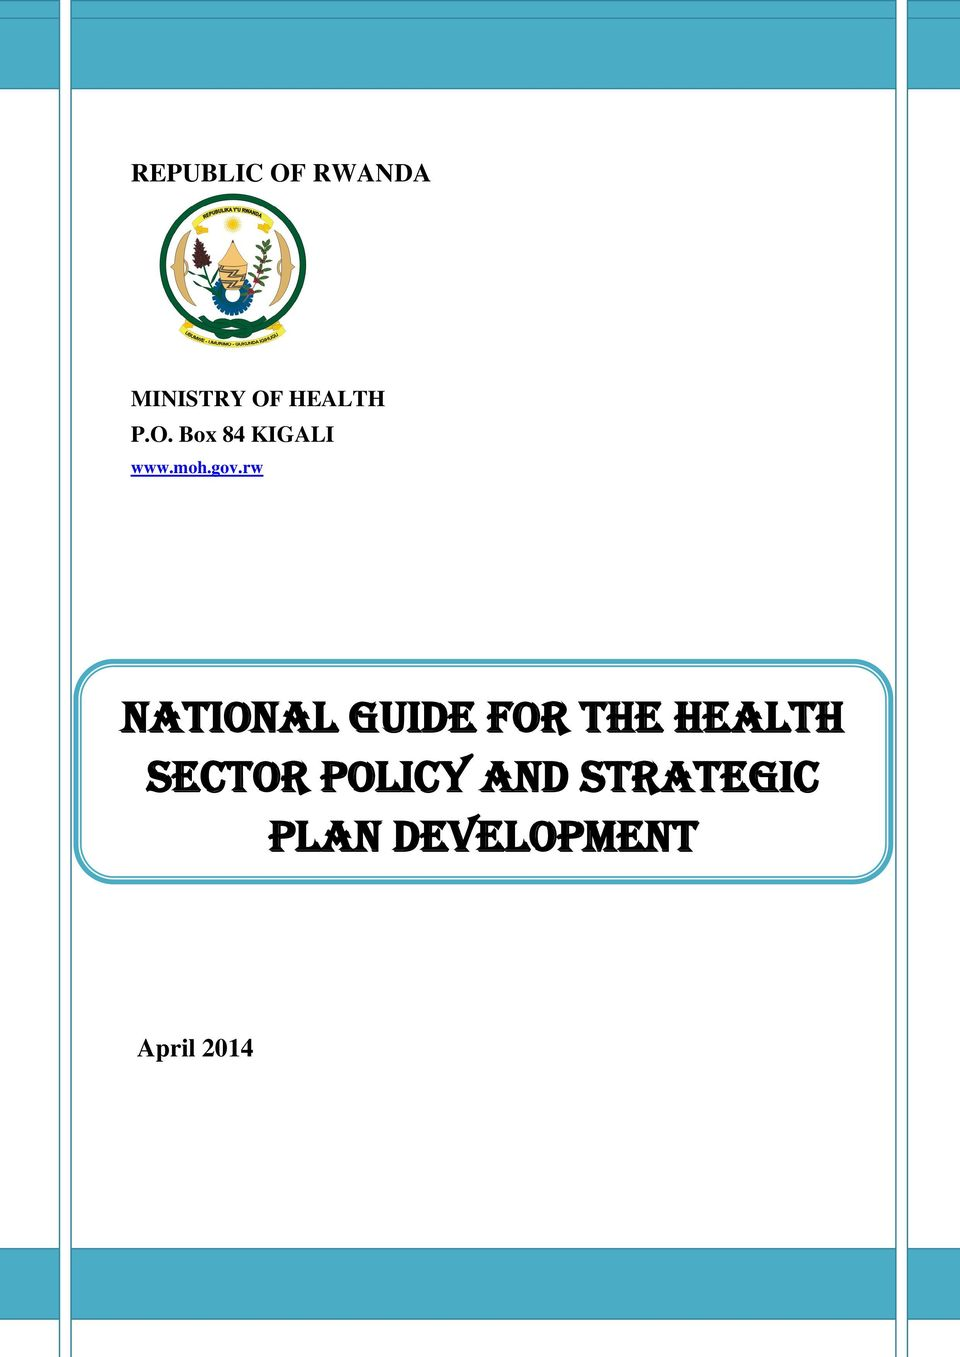 rw National Guide for the Health Sector